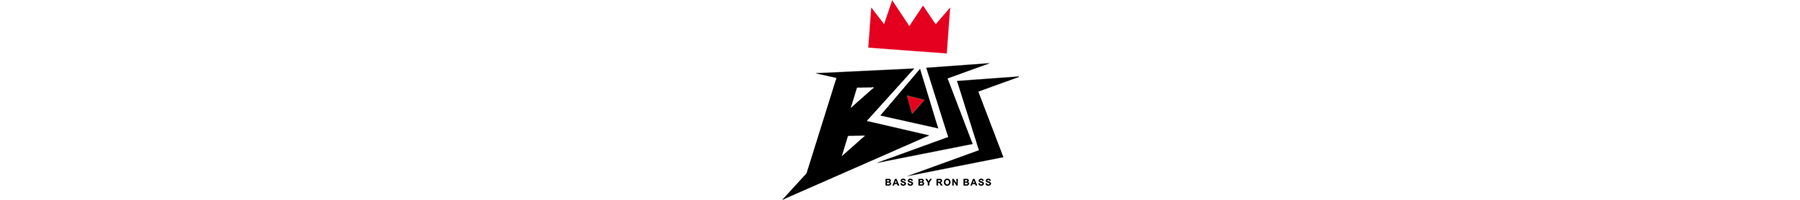 DrJays.com - Bass By Ron Bass